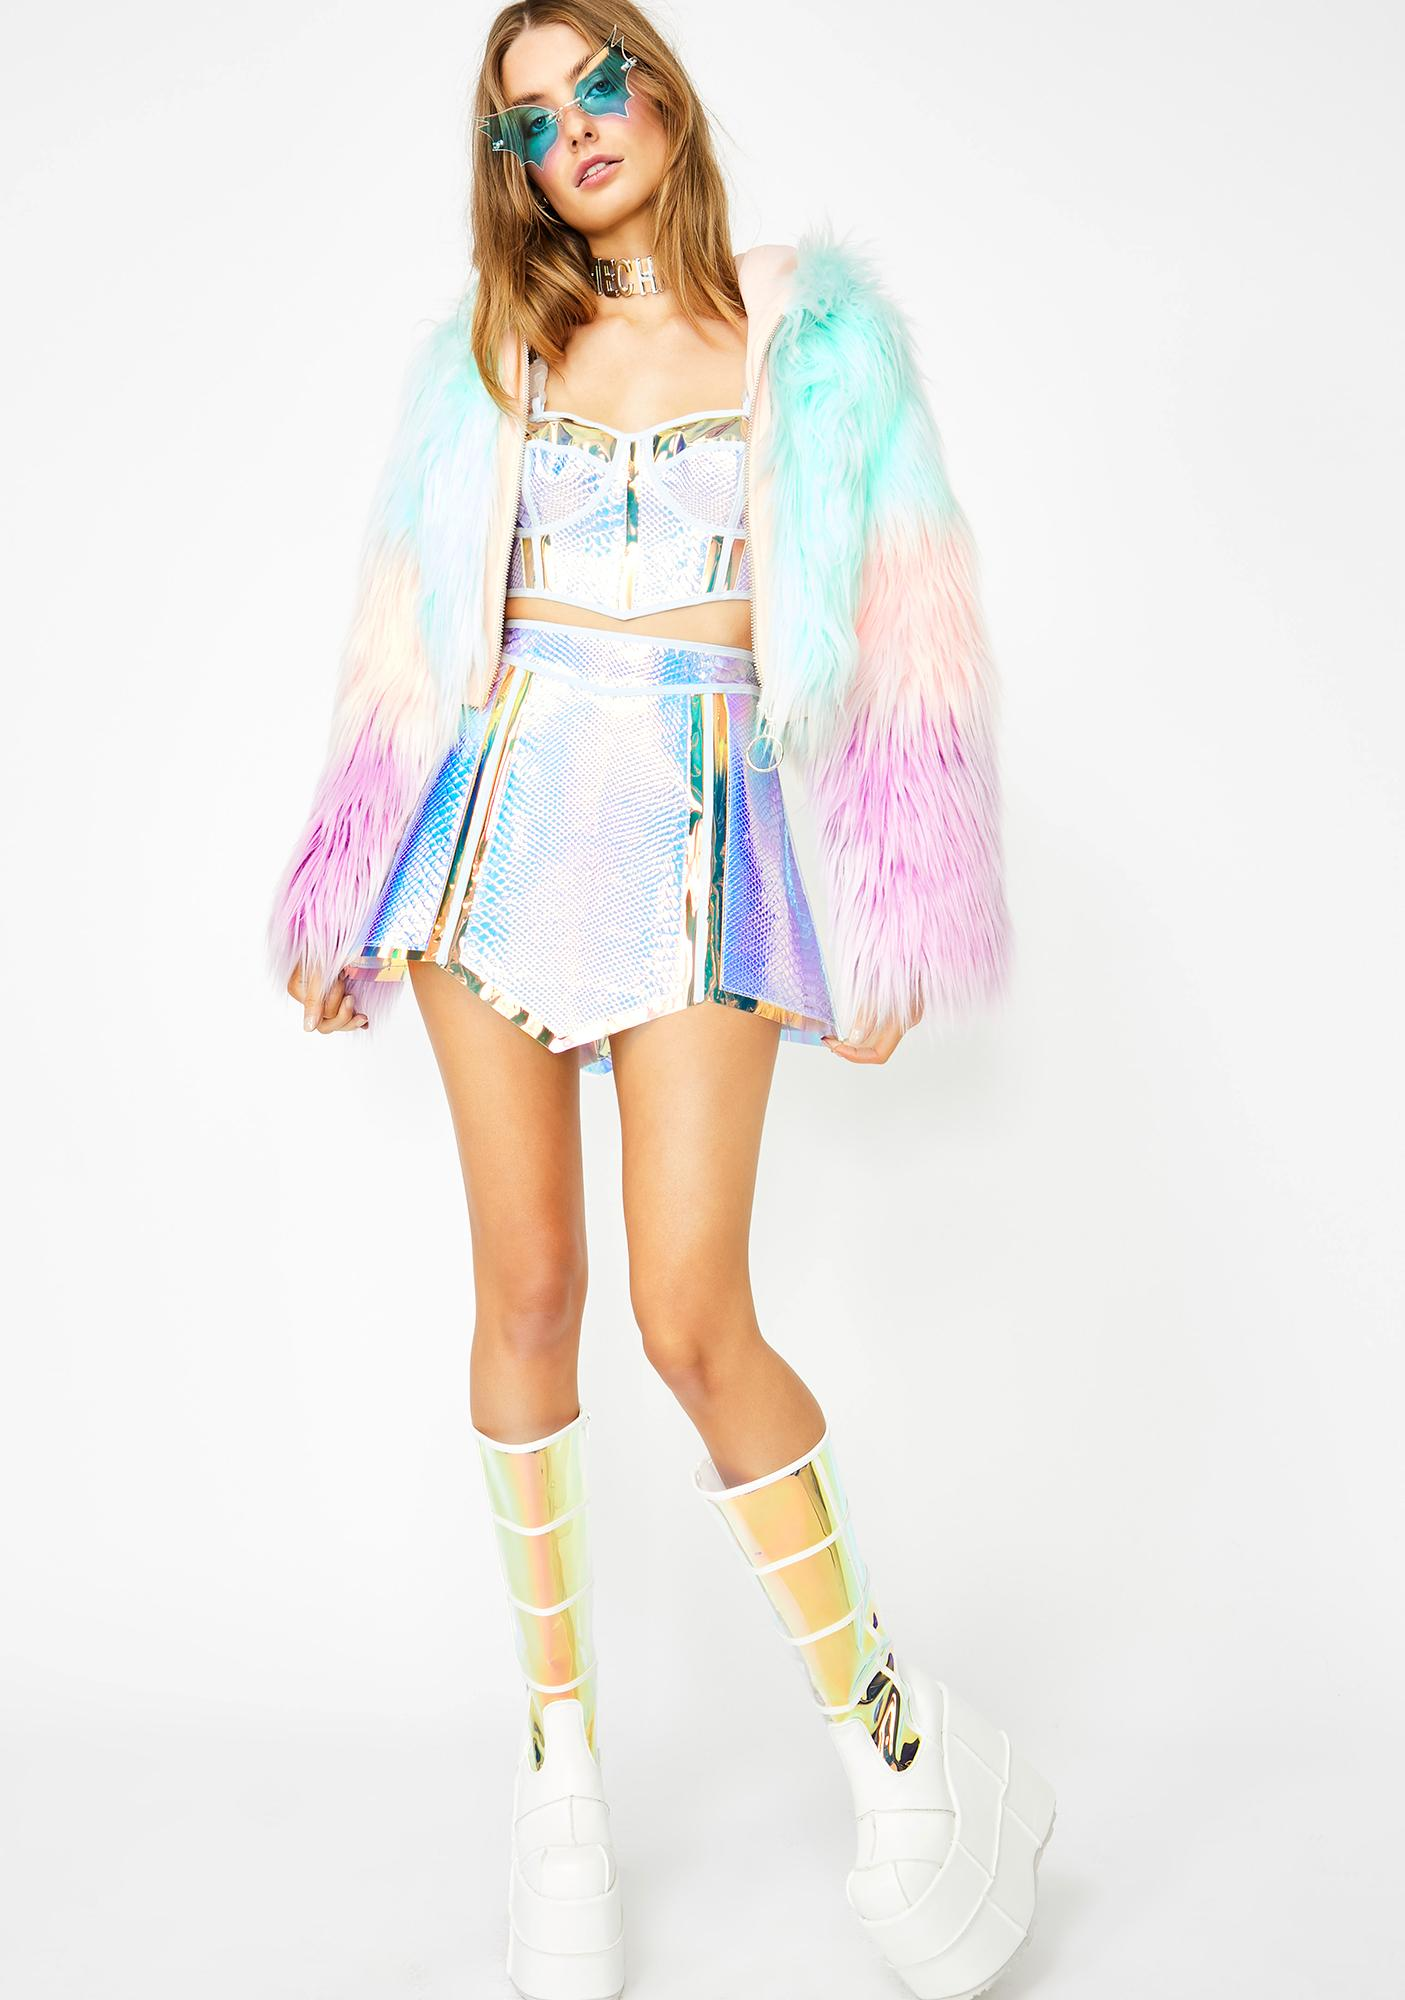 Club Exx Opulent Empress Hologram Skirt